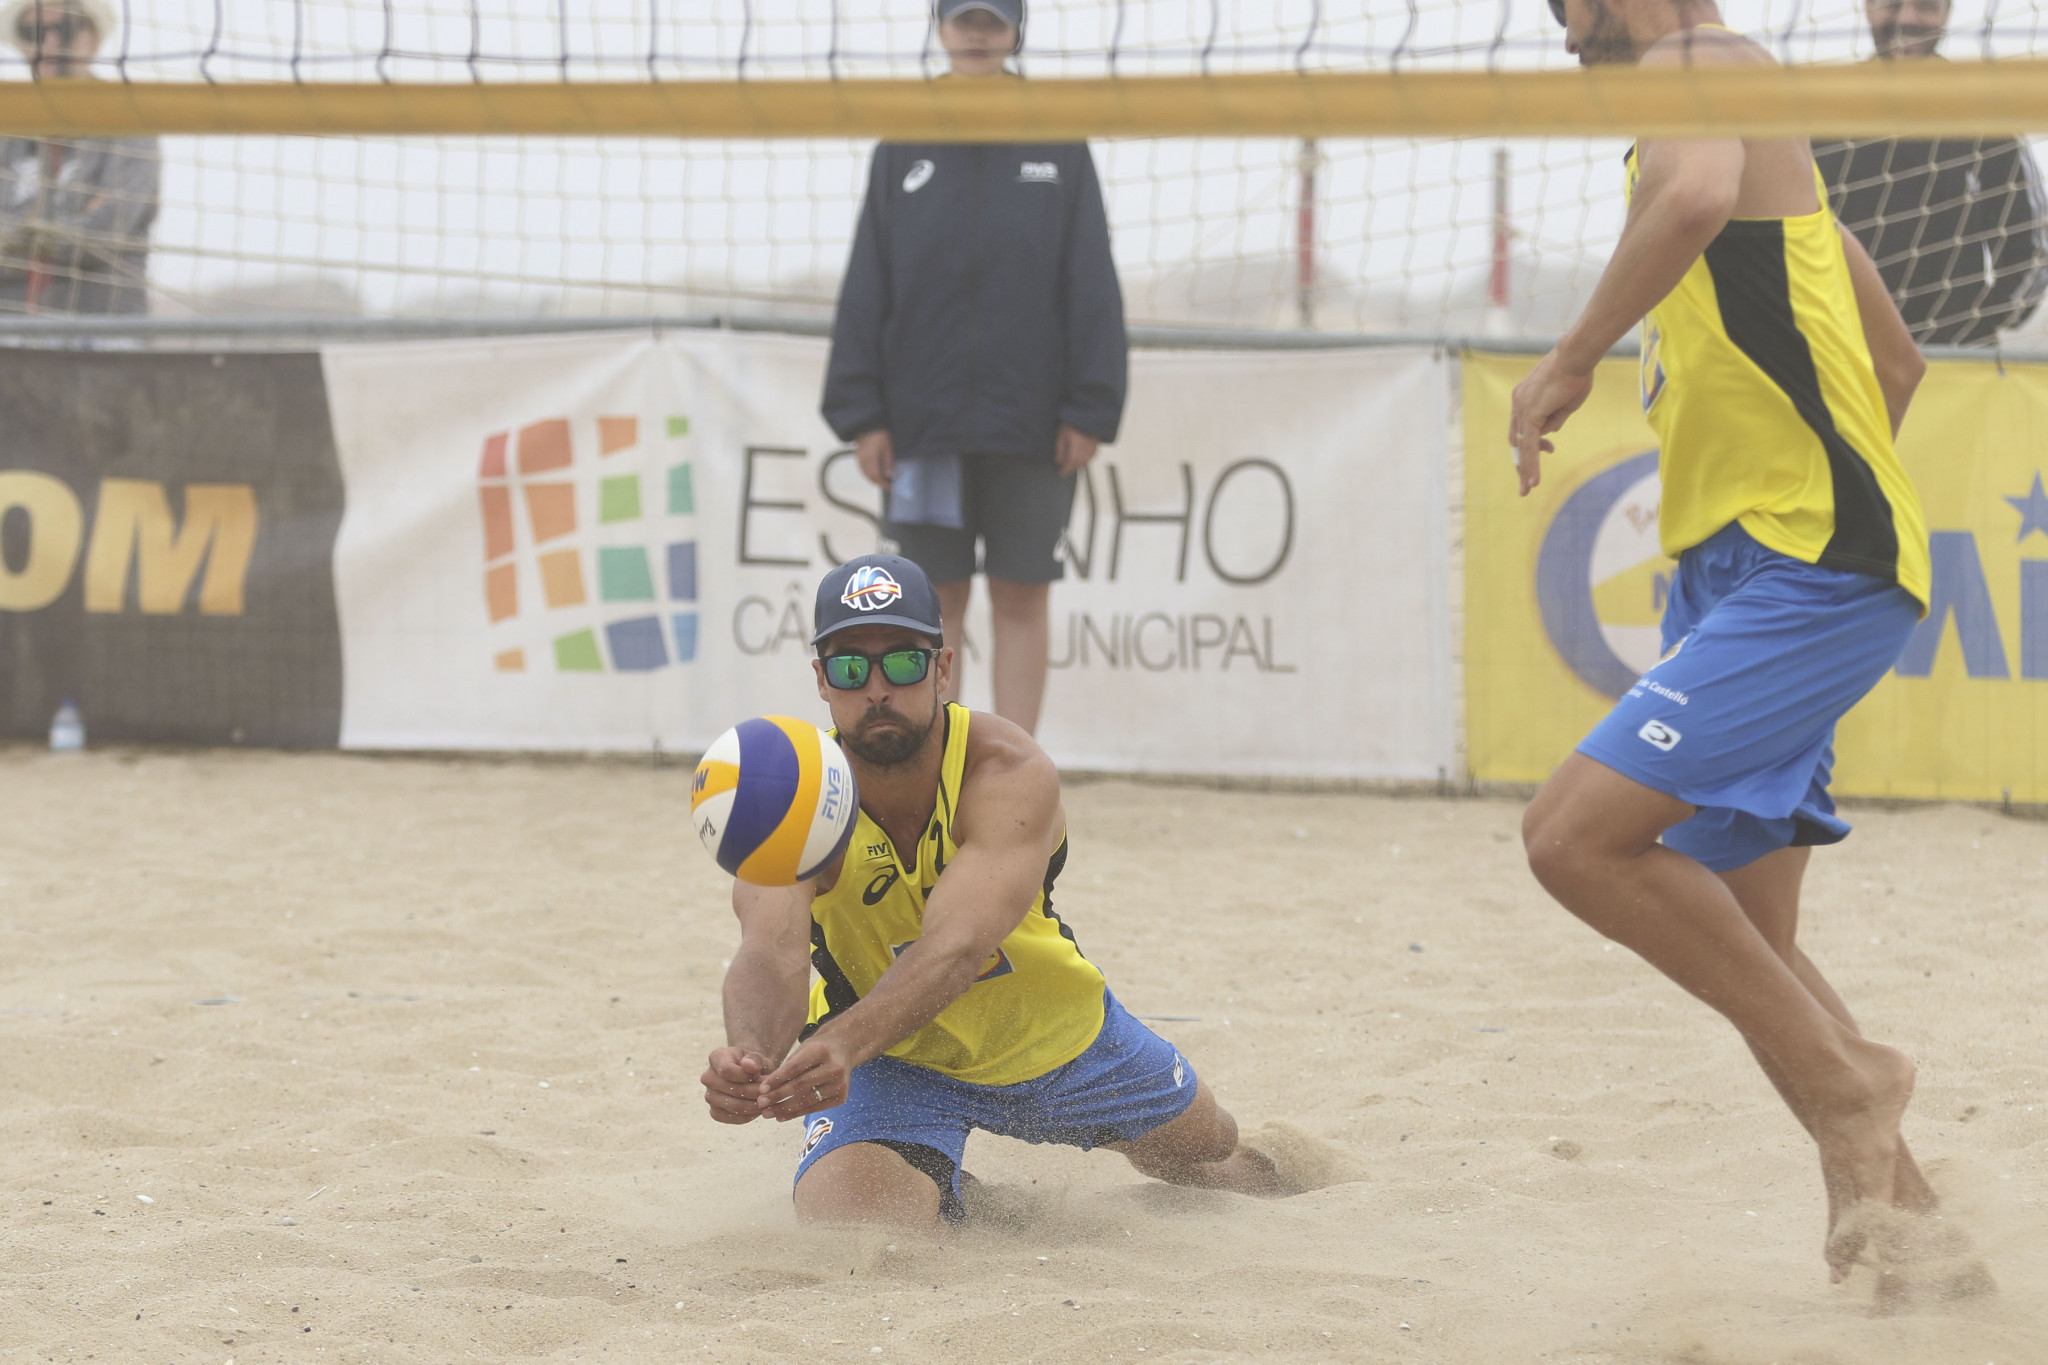 Legendary Spaniards Pablo Herrera and Adrian Gavira produced a superb display to defy the seeding in Pool F ©FIVB